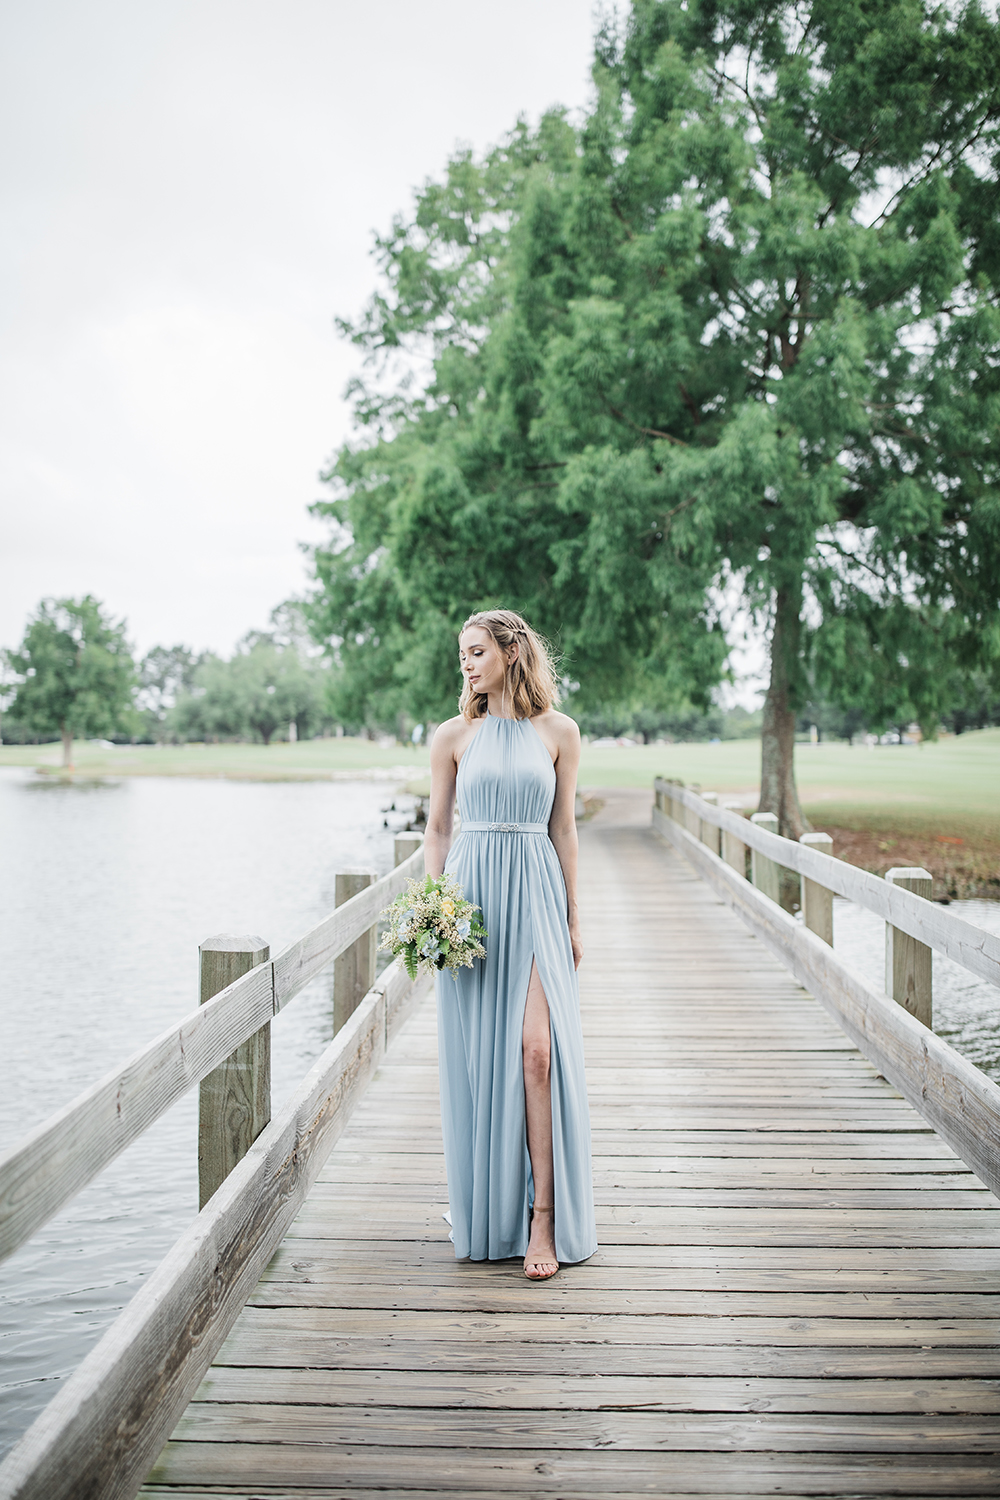 Blue High Neck Bridesmaids Dress | photo by Ash Simmons Photography | featured on I Do Y'all